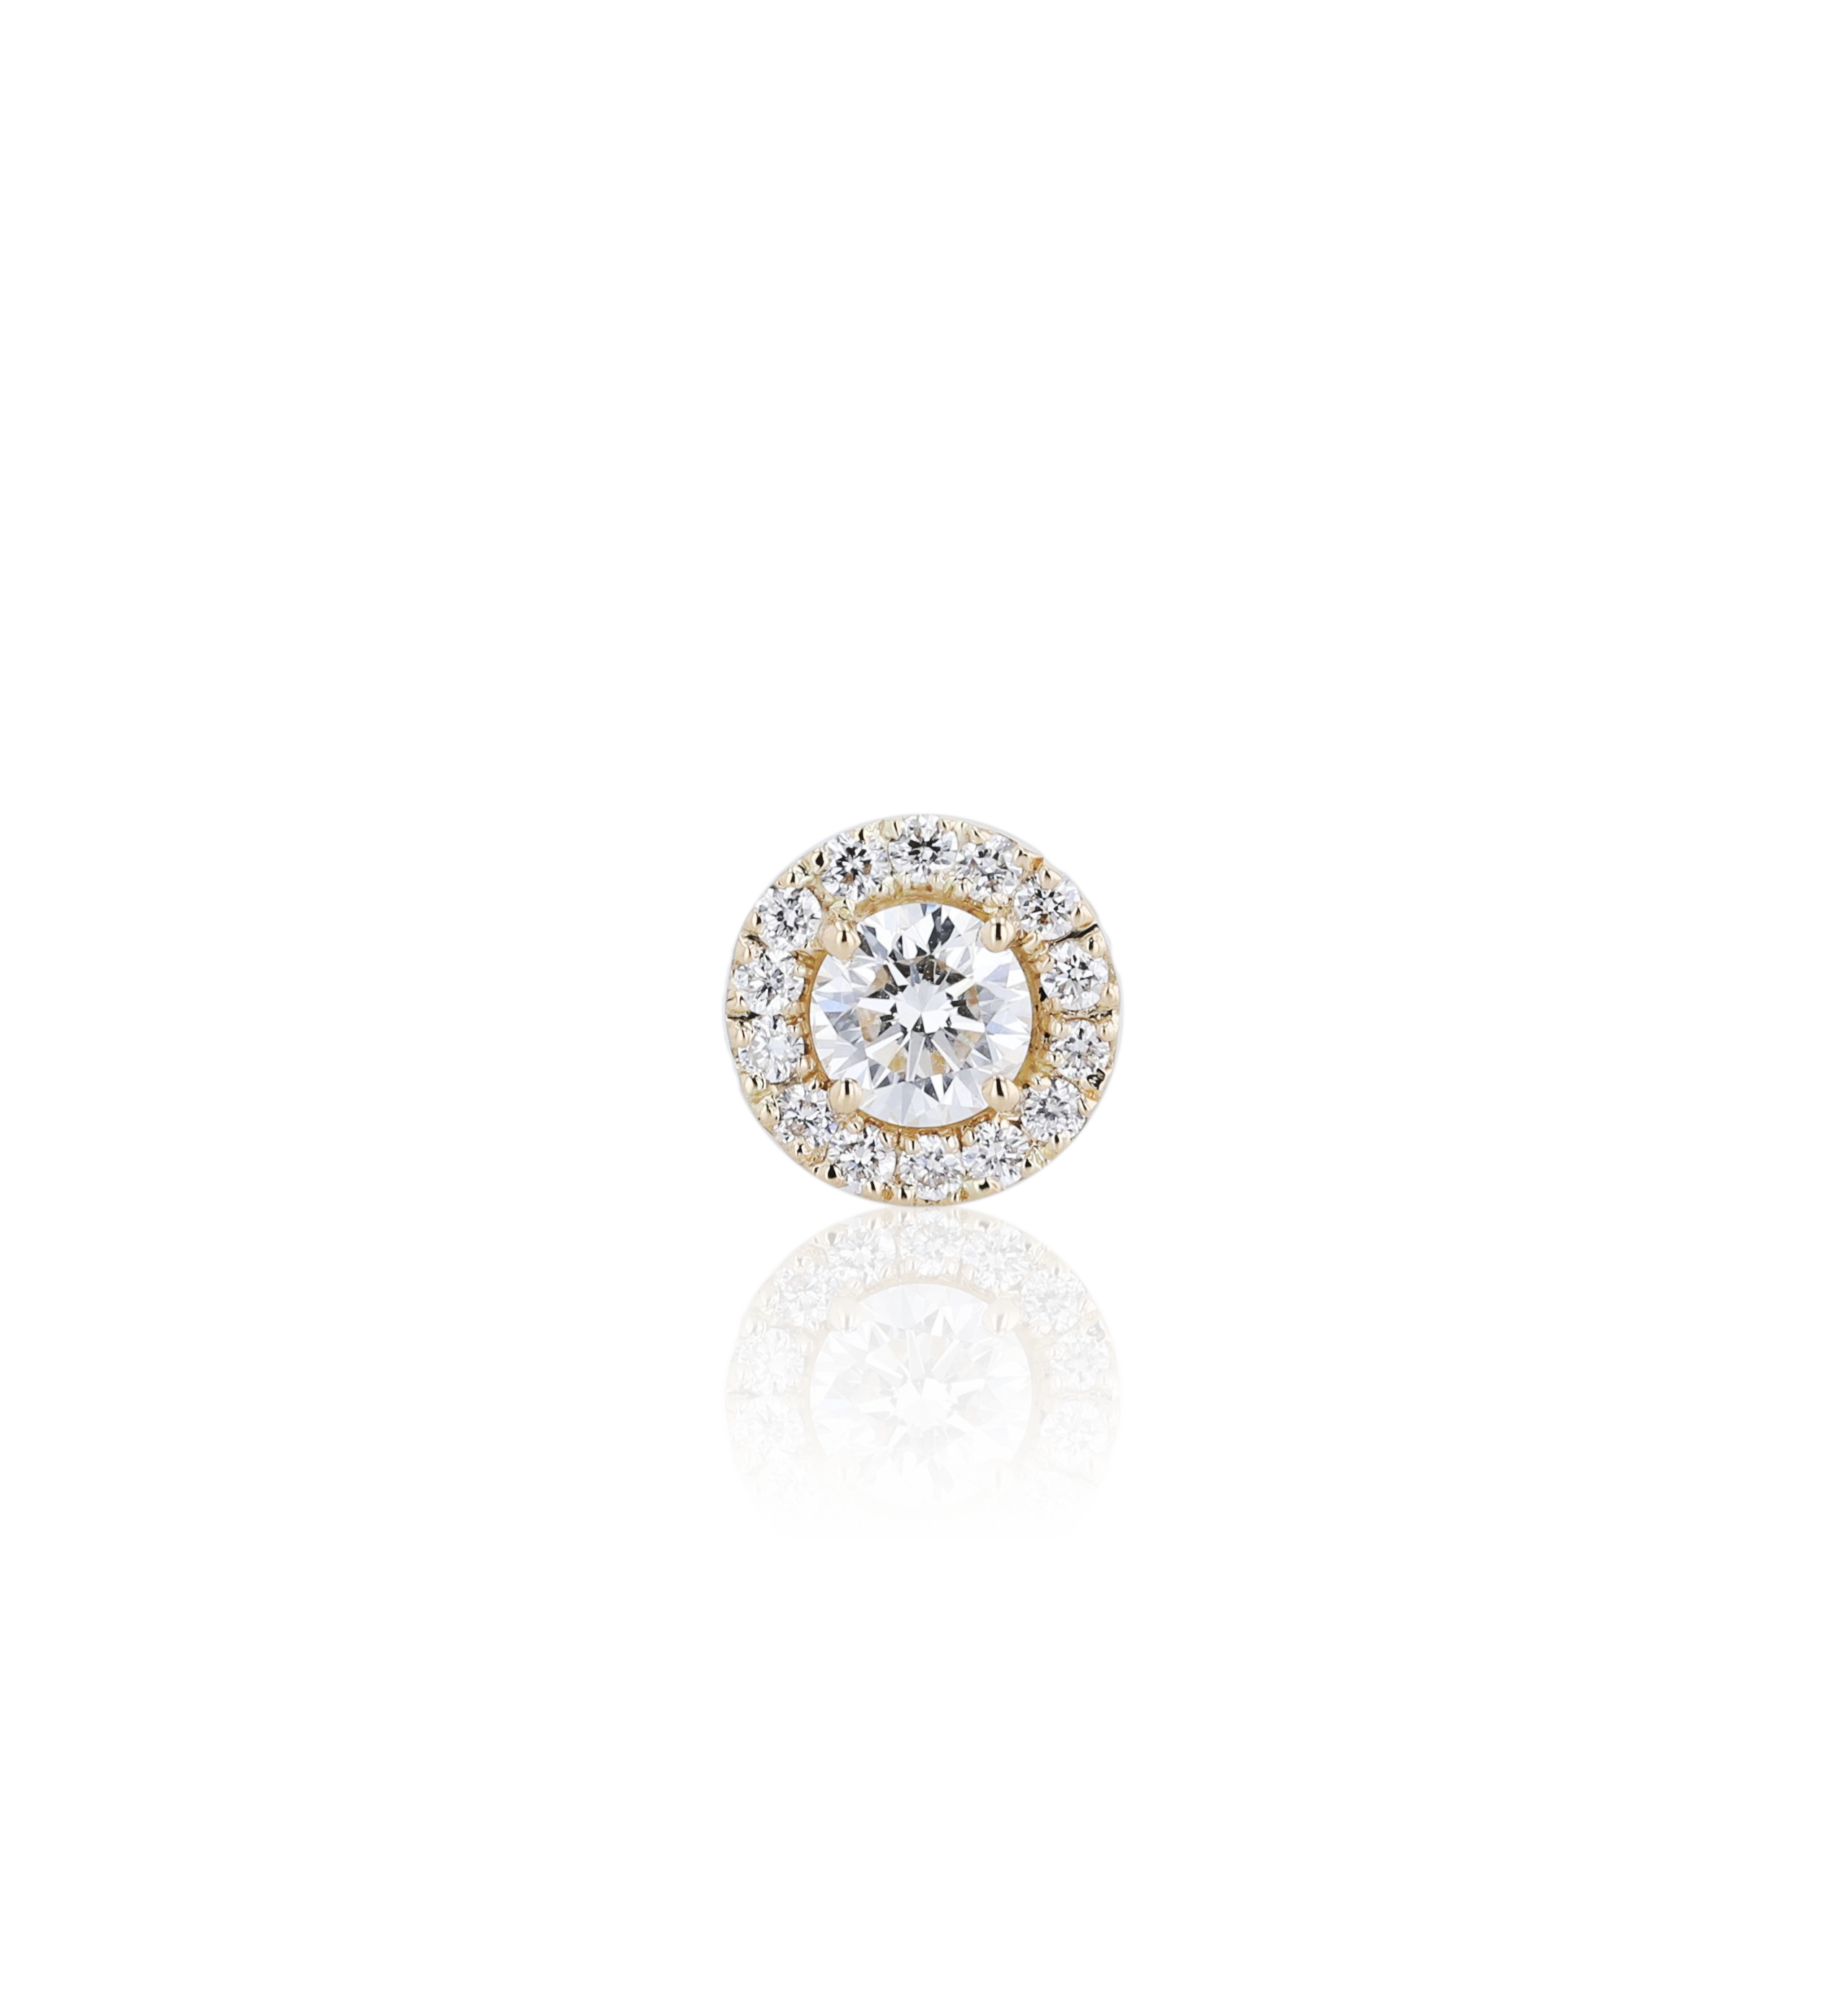 Halo Round Diamond Stud Earrings in 18K Yellow Gold 0.63 CT